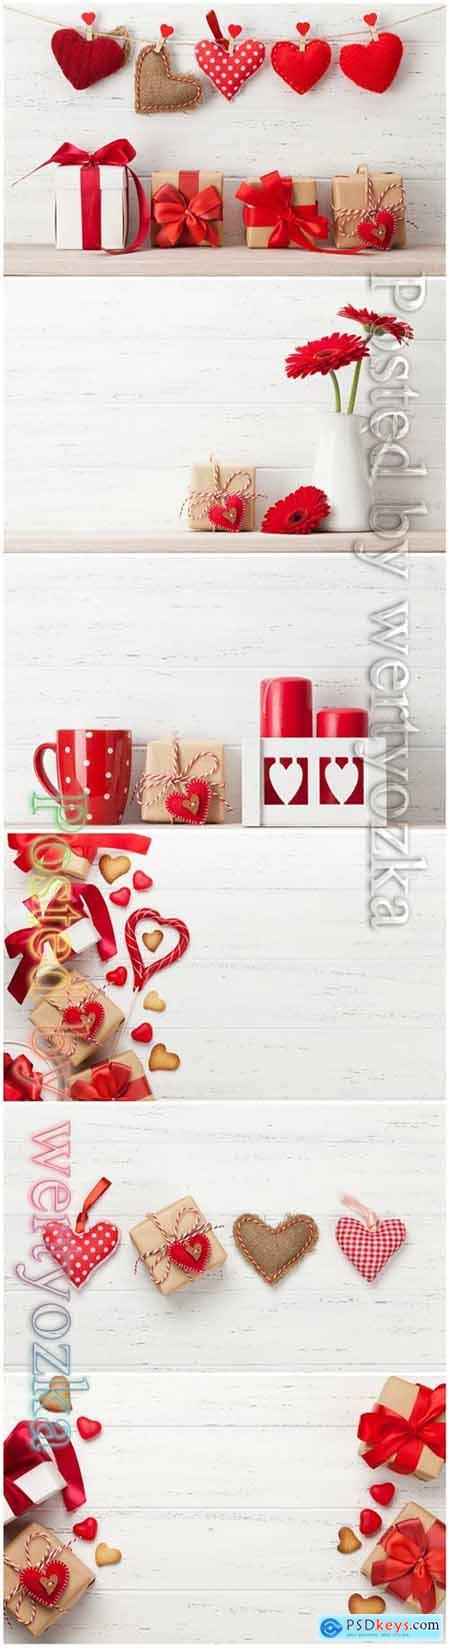 Valentines day beautiful stock photo # 2